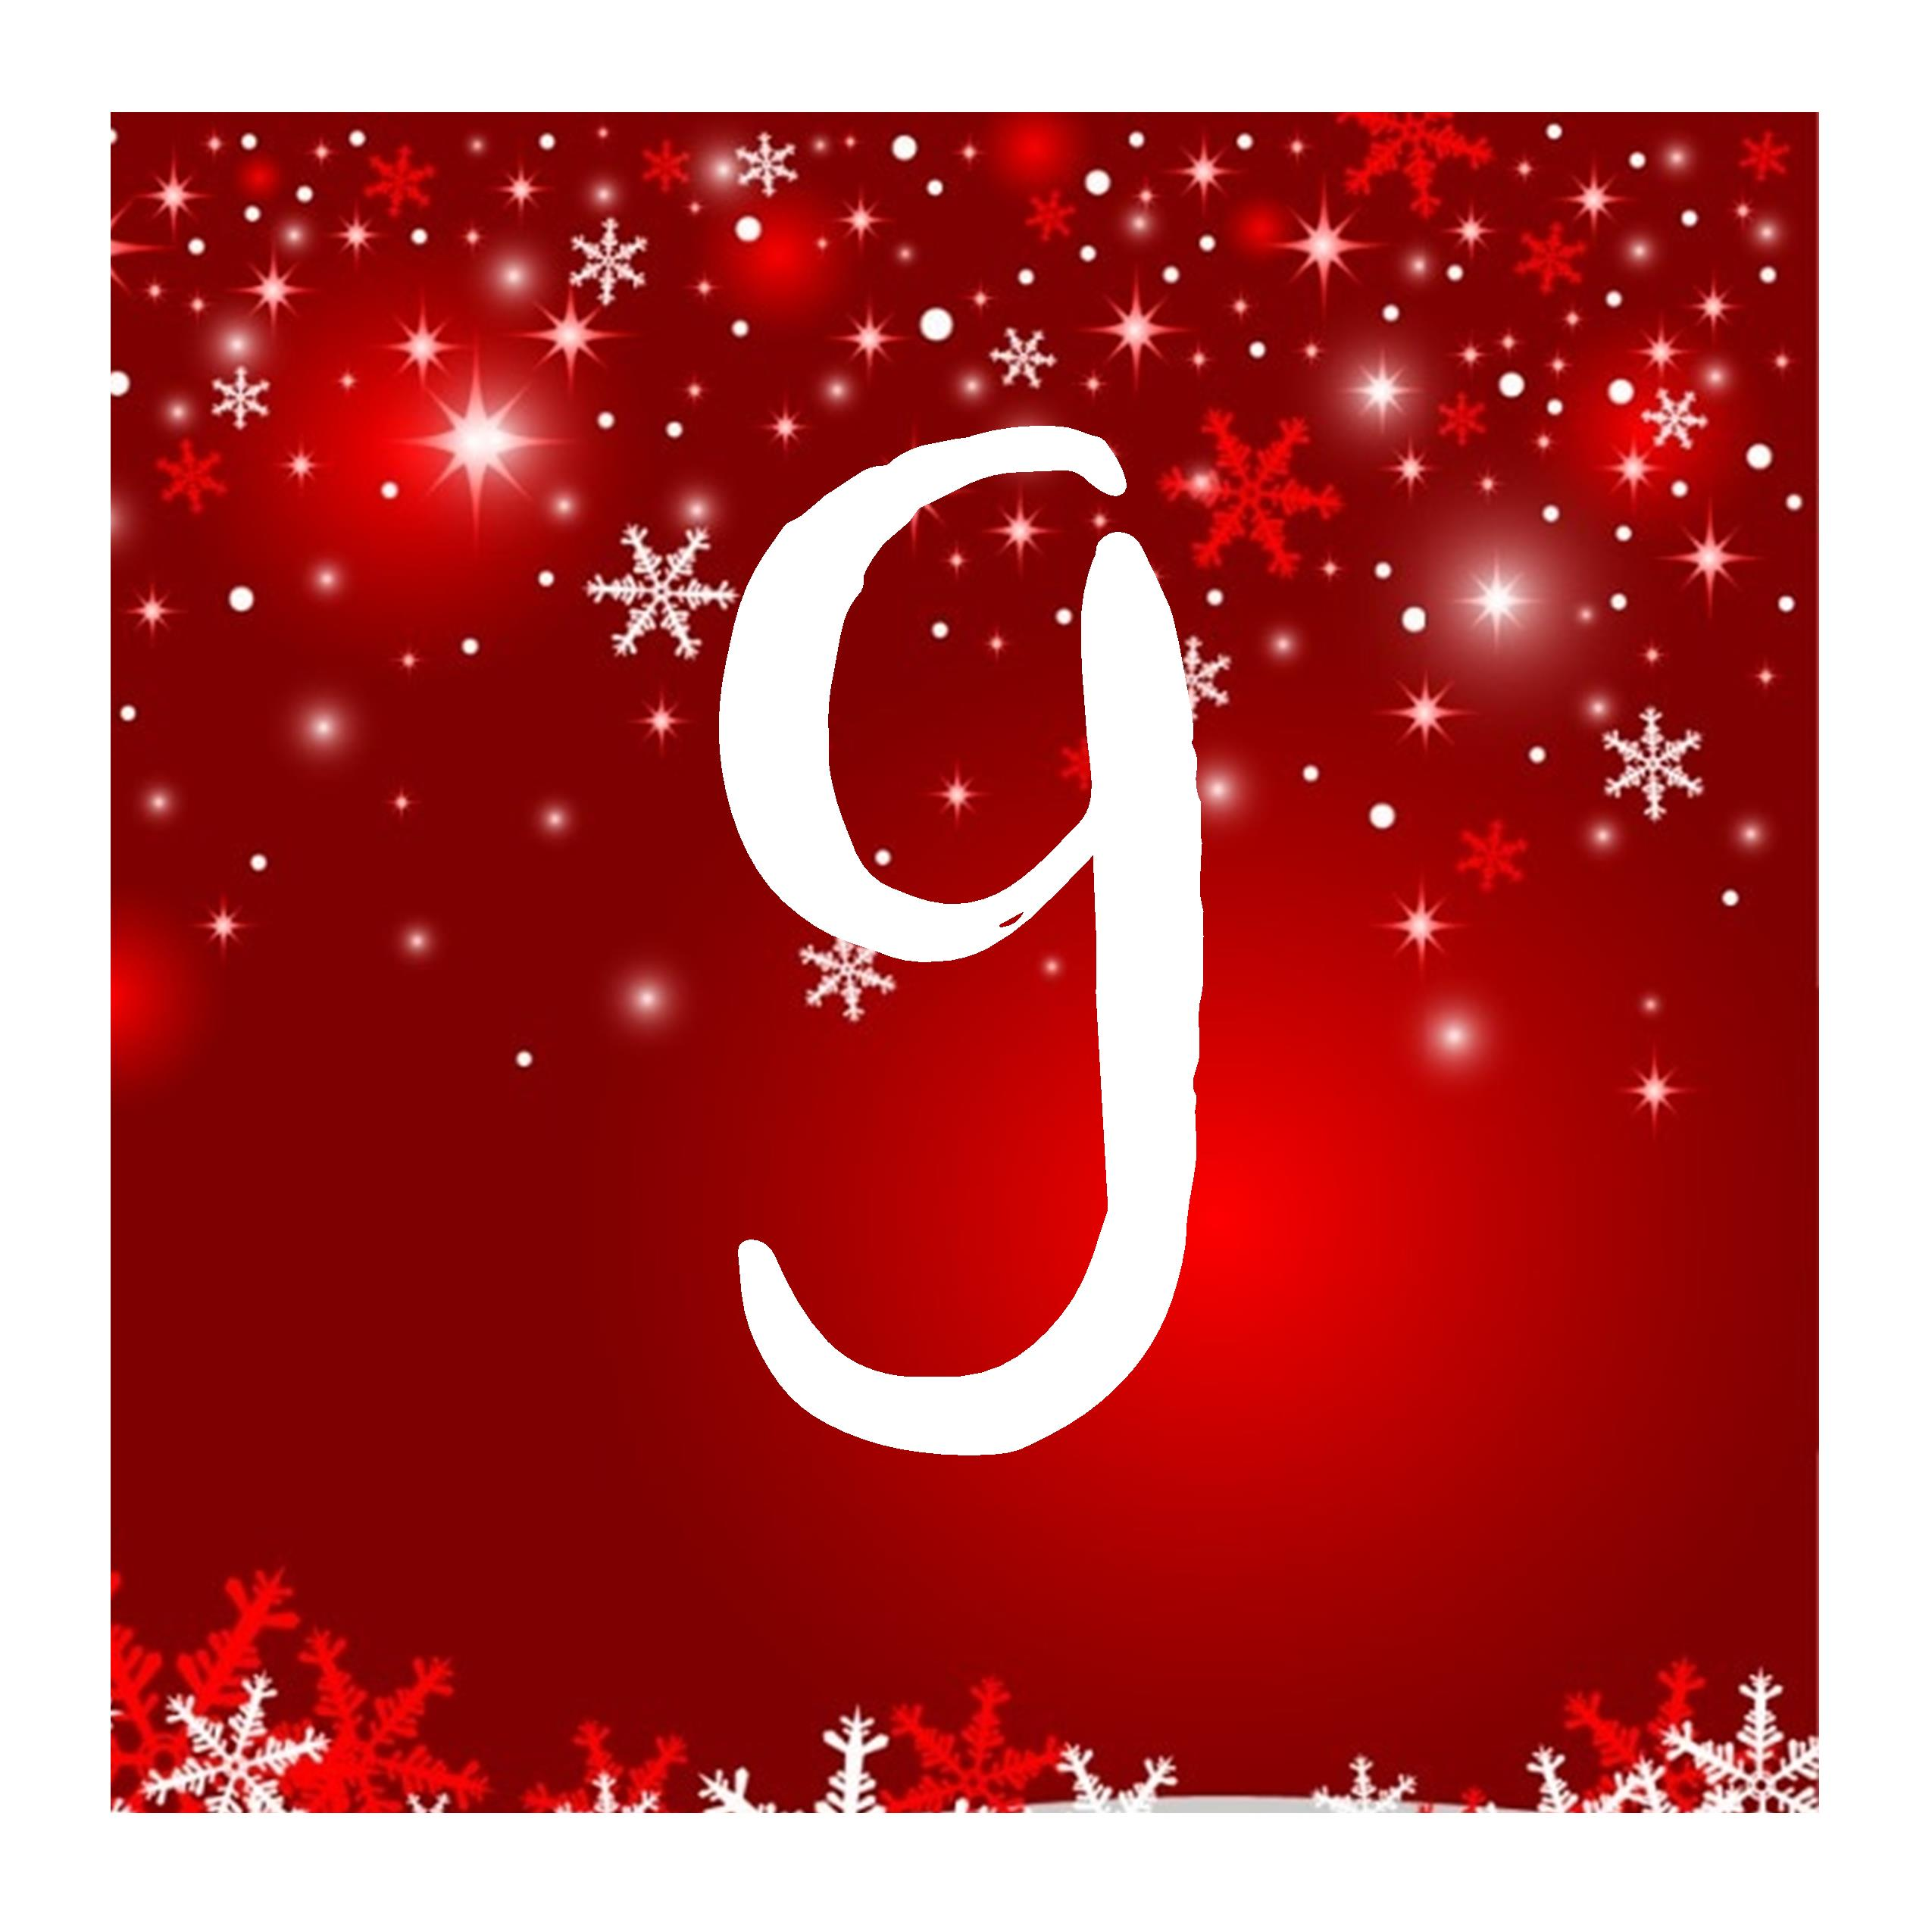 Ninth Day Of Christmas.On The Ninth Day Of Christmas St James Episcopal